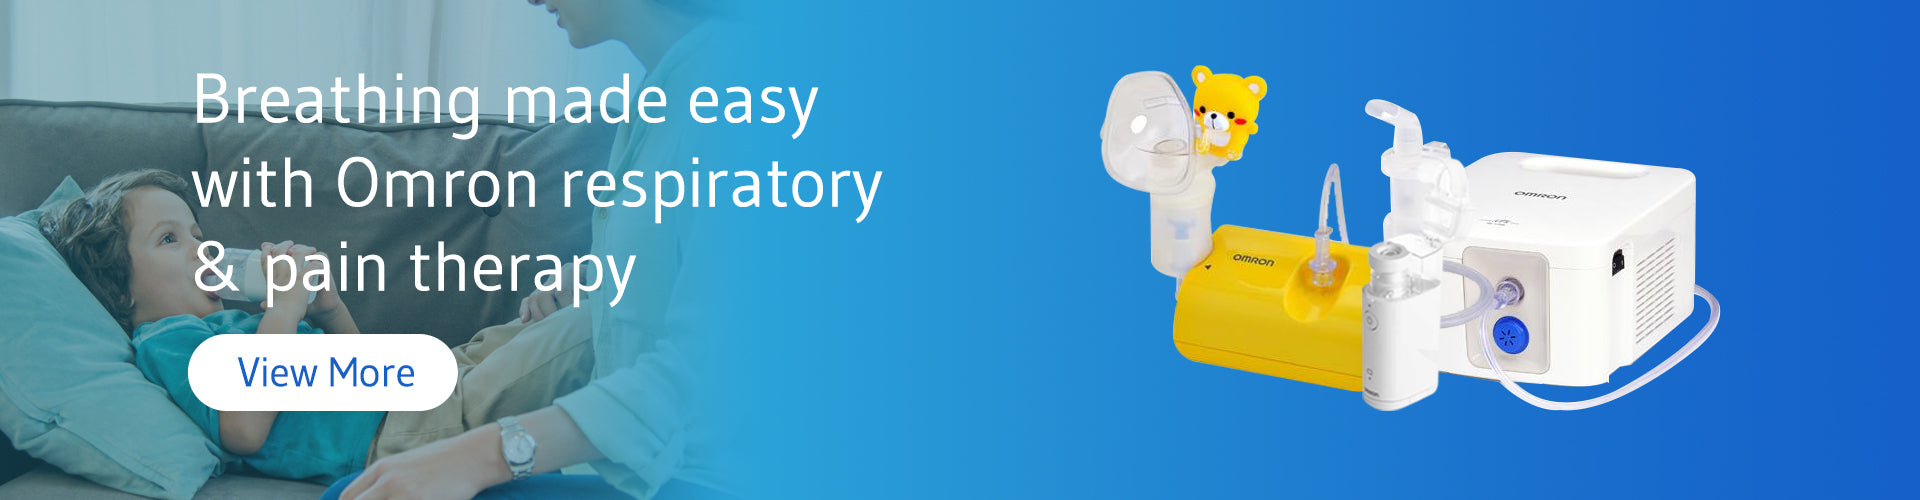 Respiratory	Therapy|	Omron	Healthcare	Brand	Shop